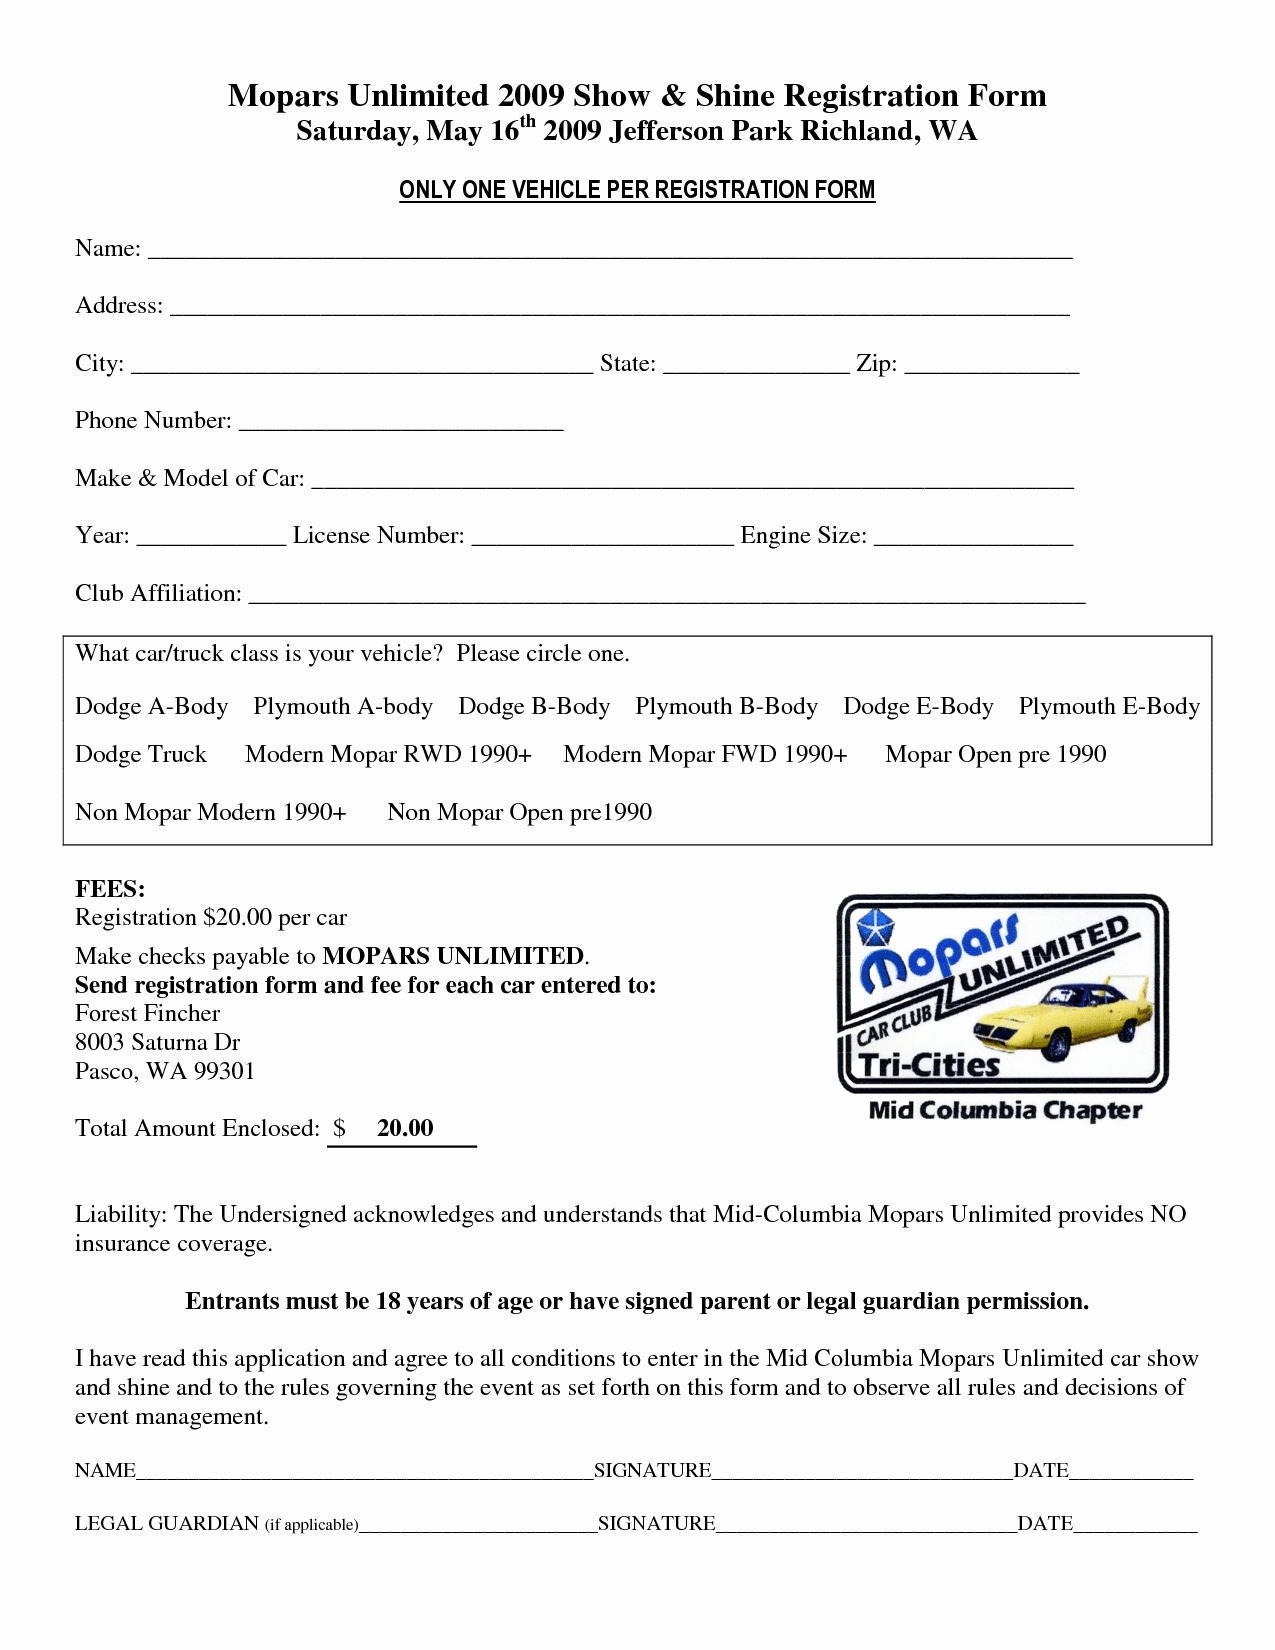 Registration form Template Word Fresh Car Show Registration form Templates